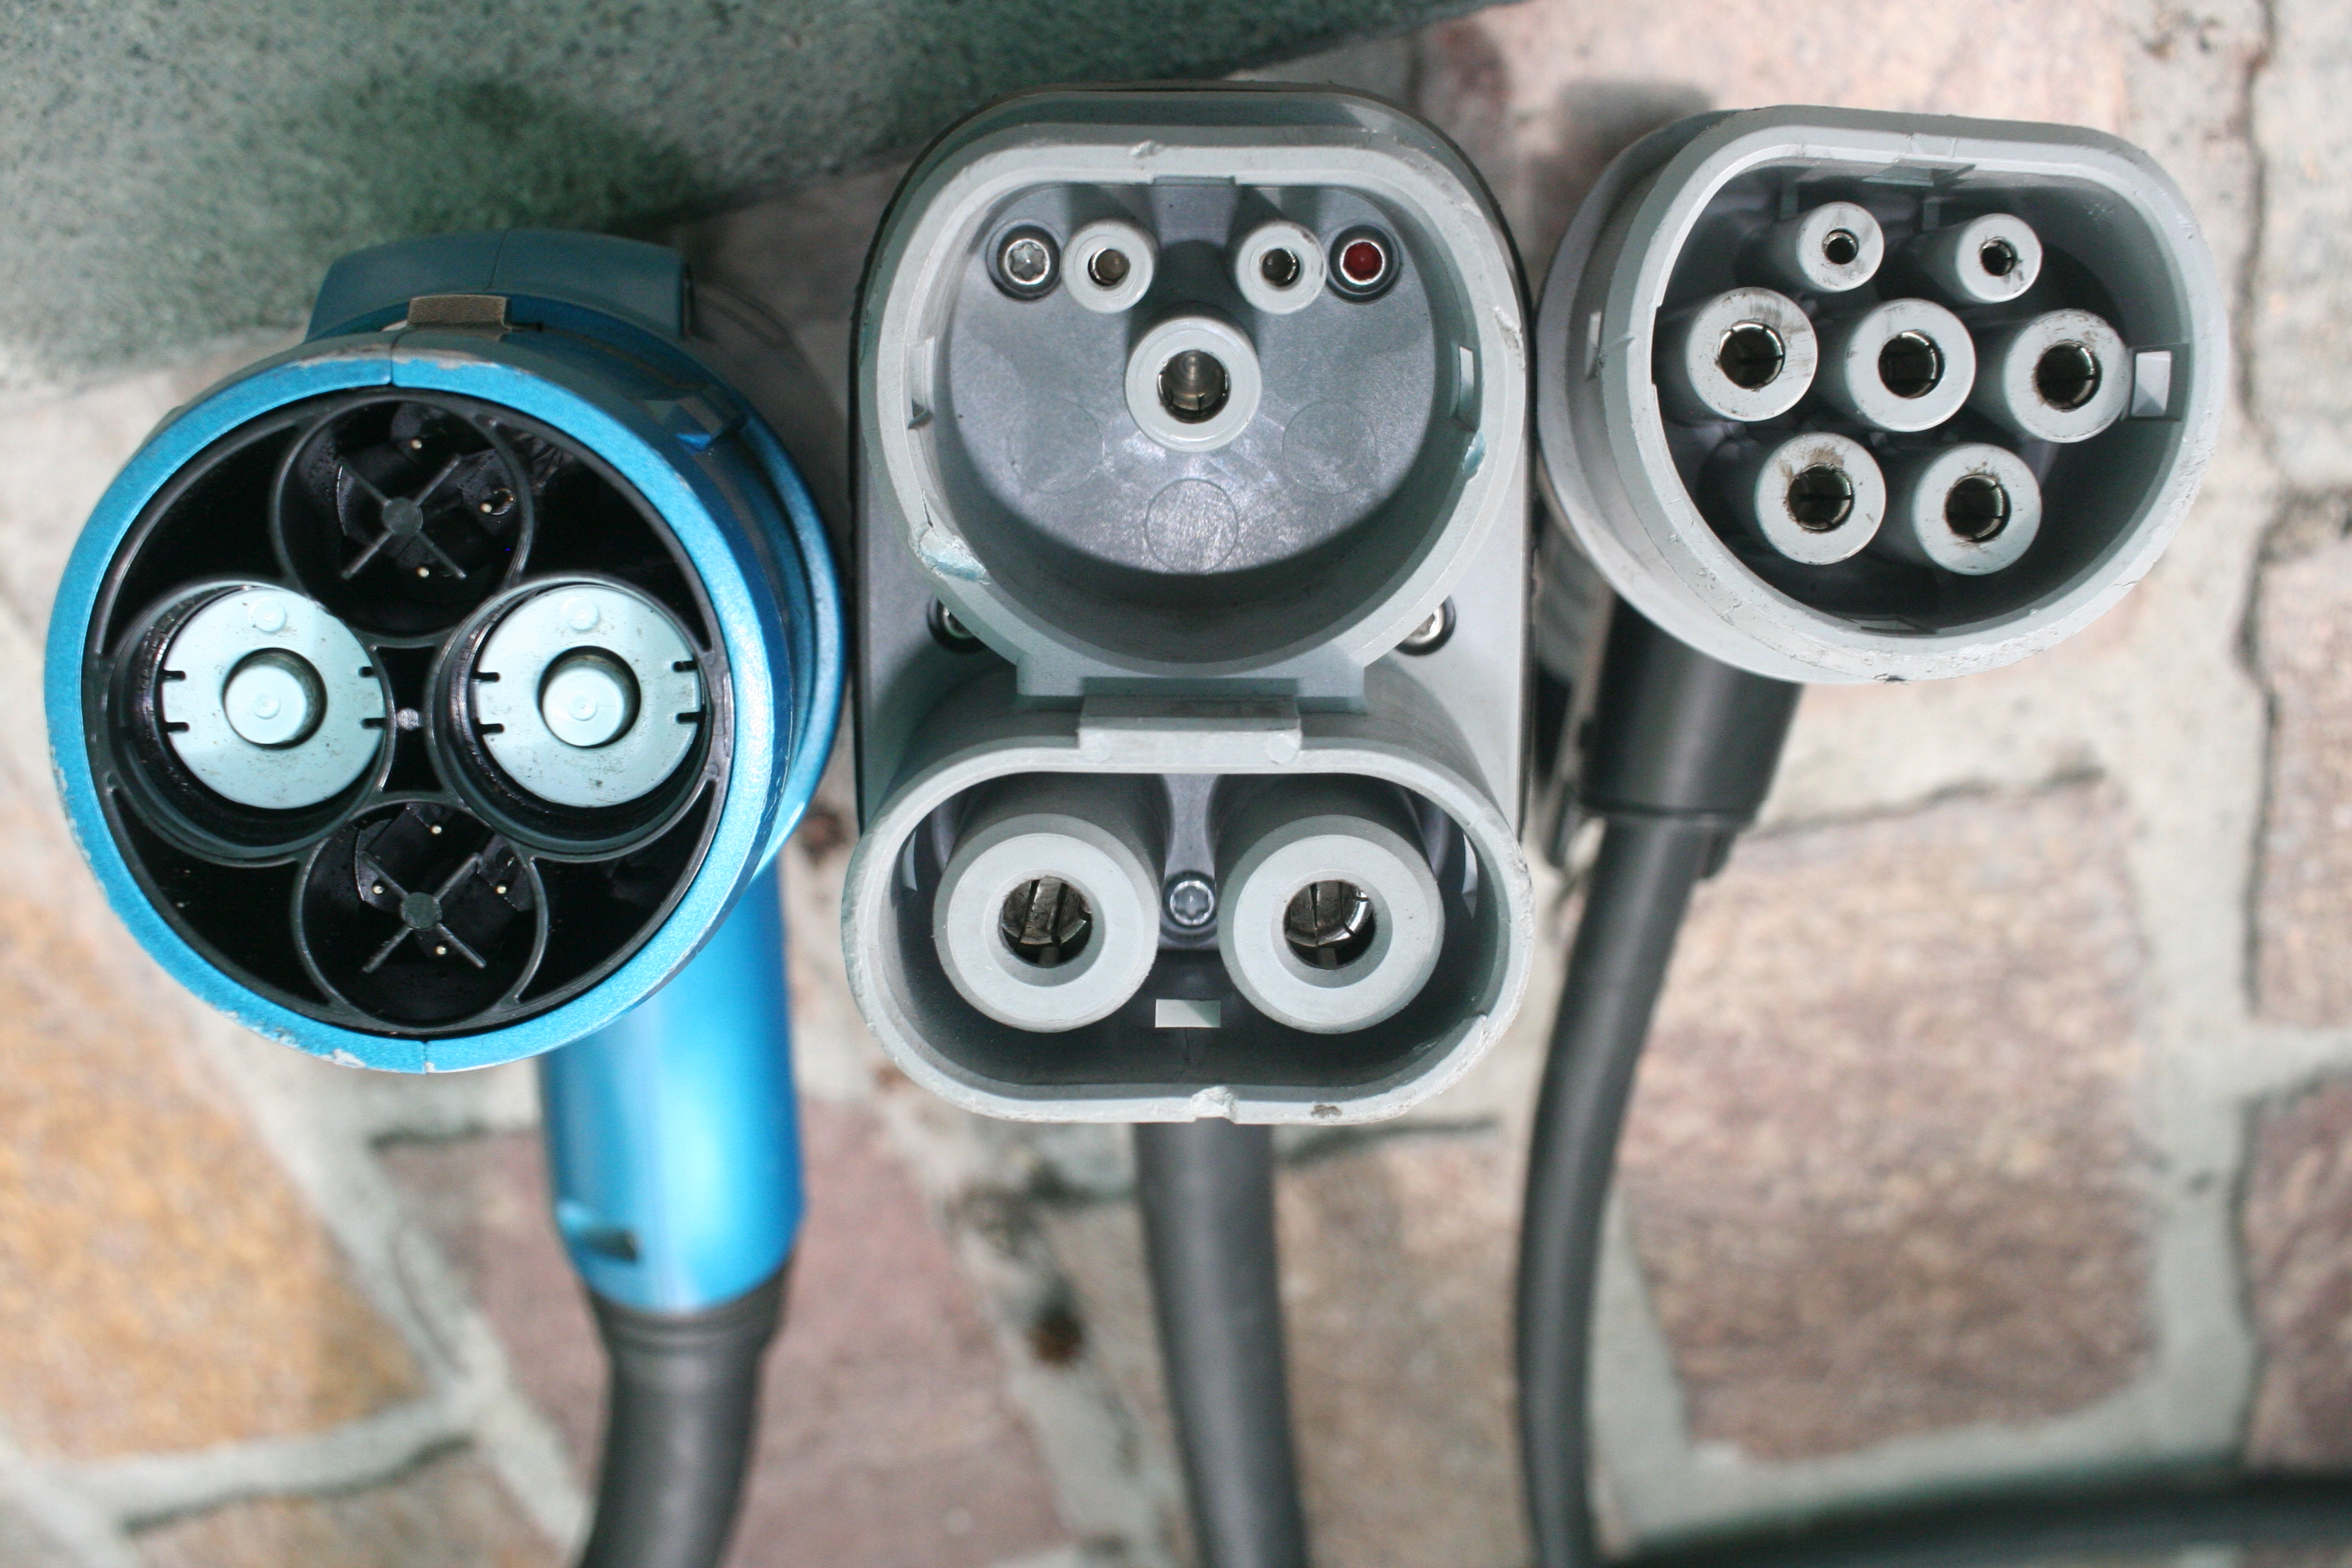 File:Chademo-combo2-iec-type-2-connectors-side-by-side.jpg - Wikimedia  Commons